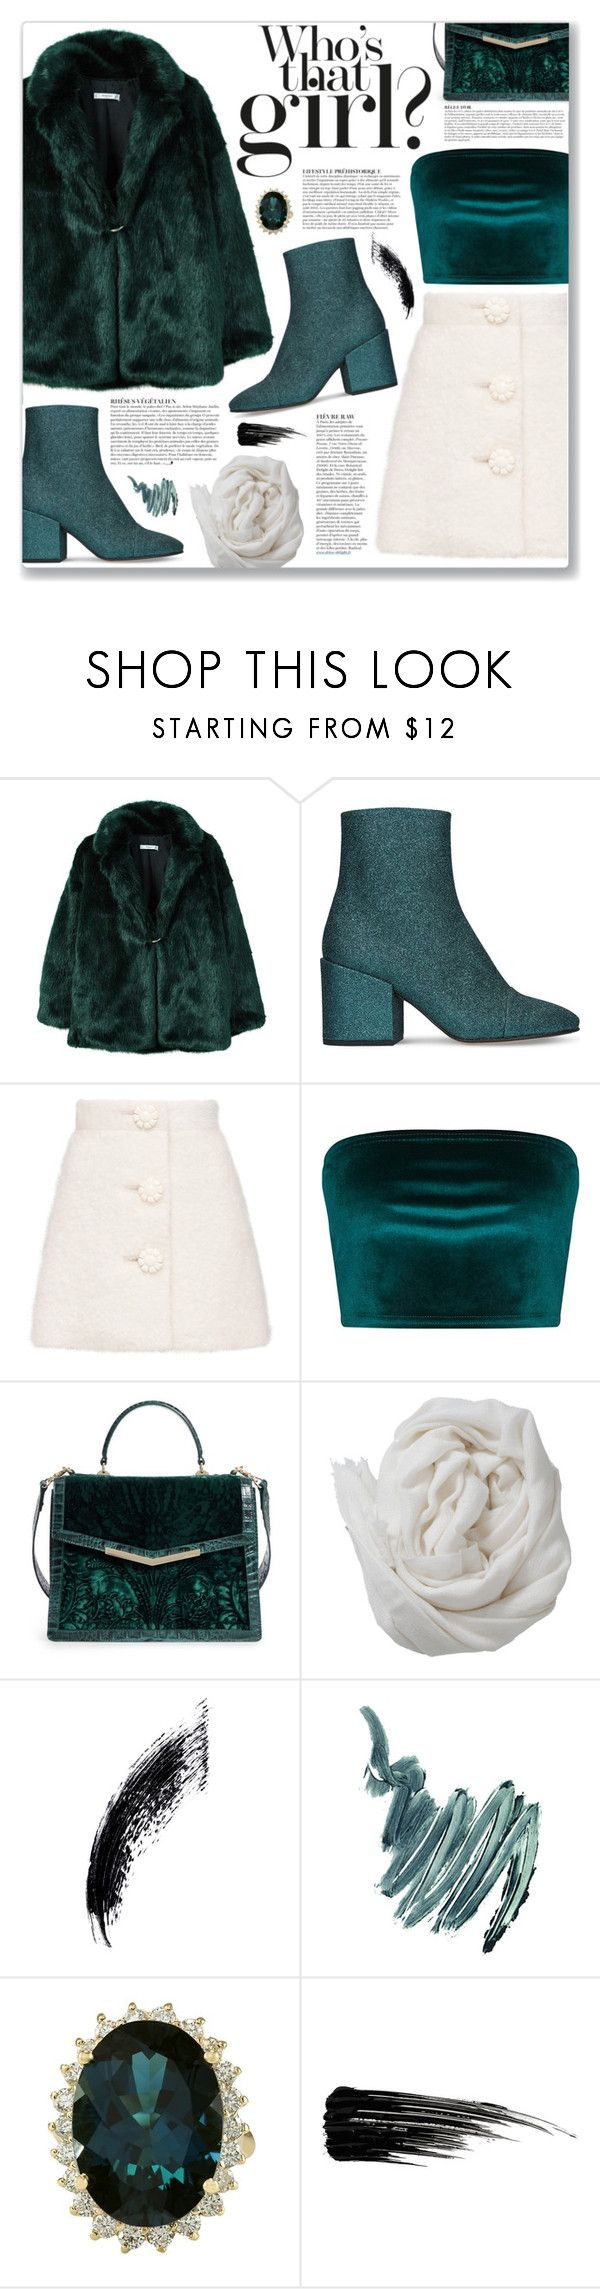 """Emerald"" by myduza-and-koteczka on Polyvore featuring MANGO, Dries Van Noten, Brahmin, Anja, Brunello Cucinelli, Napoleon Perdis and Urban Decay"